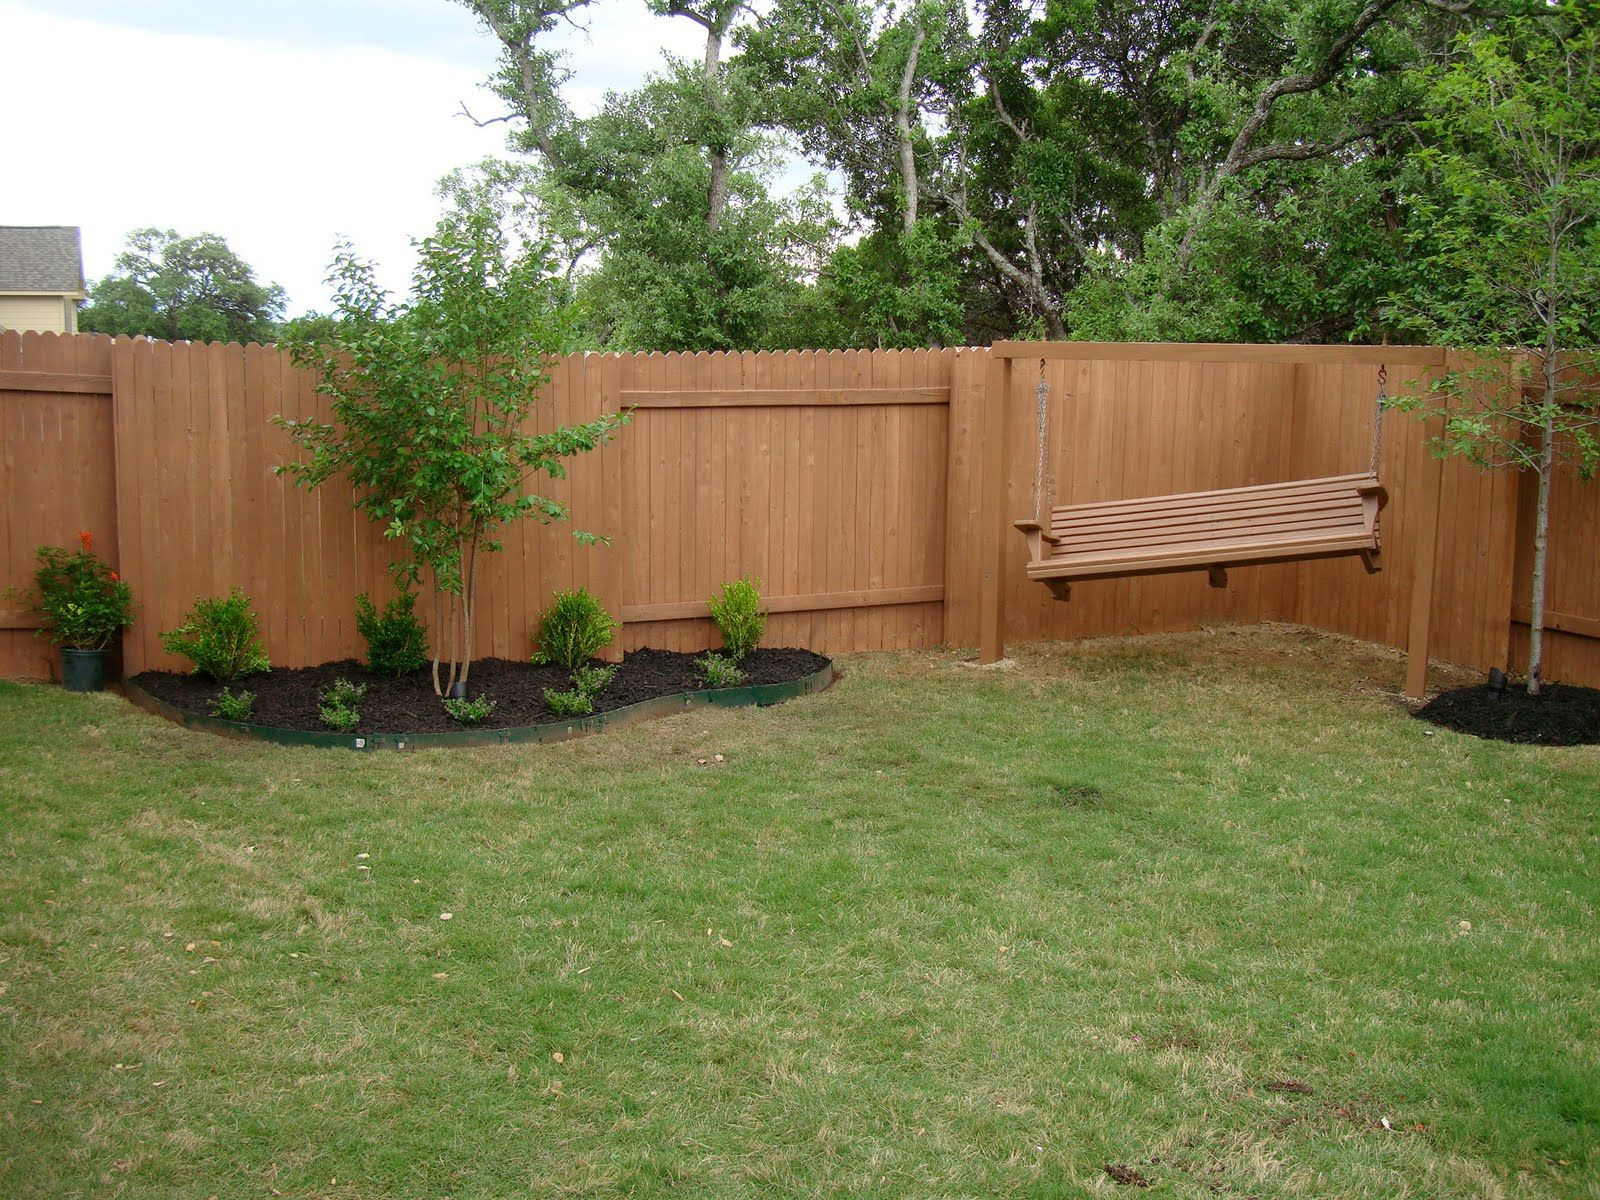 Small bakyards backyard design simple backyard design for Backyard garden designs